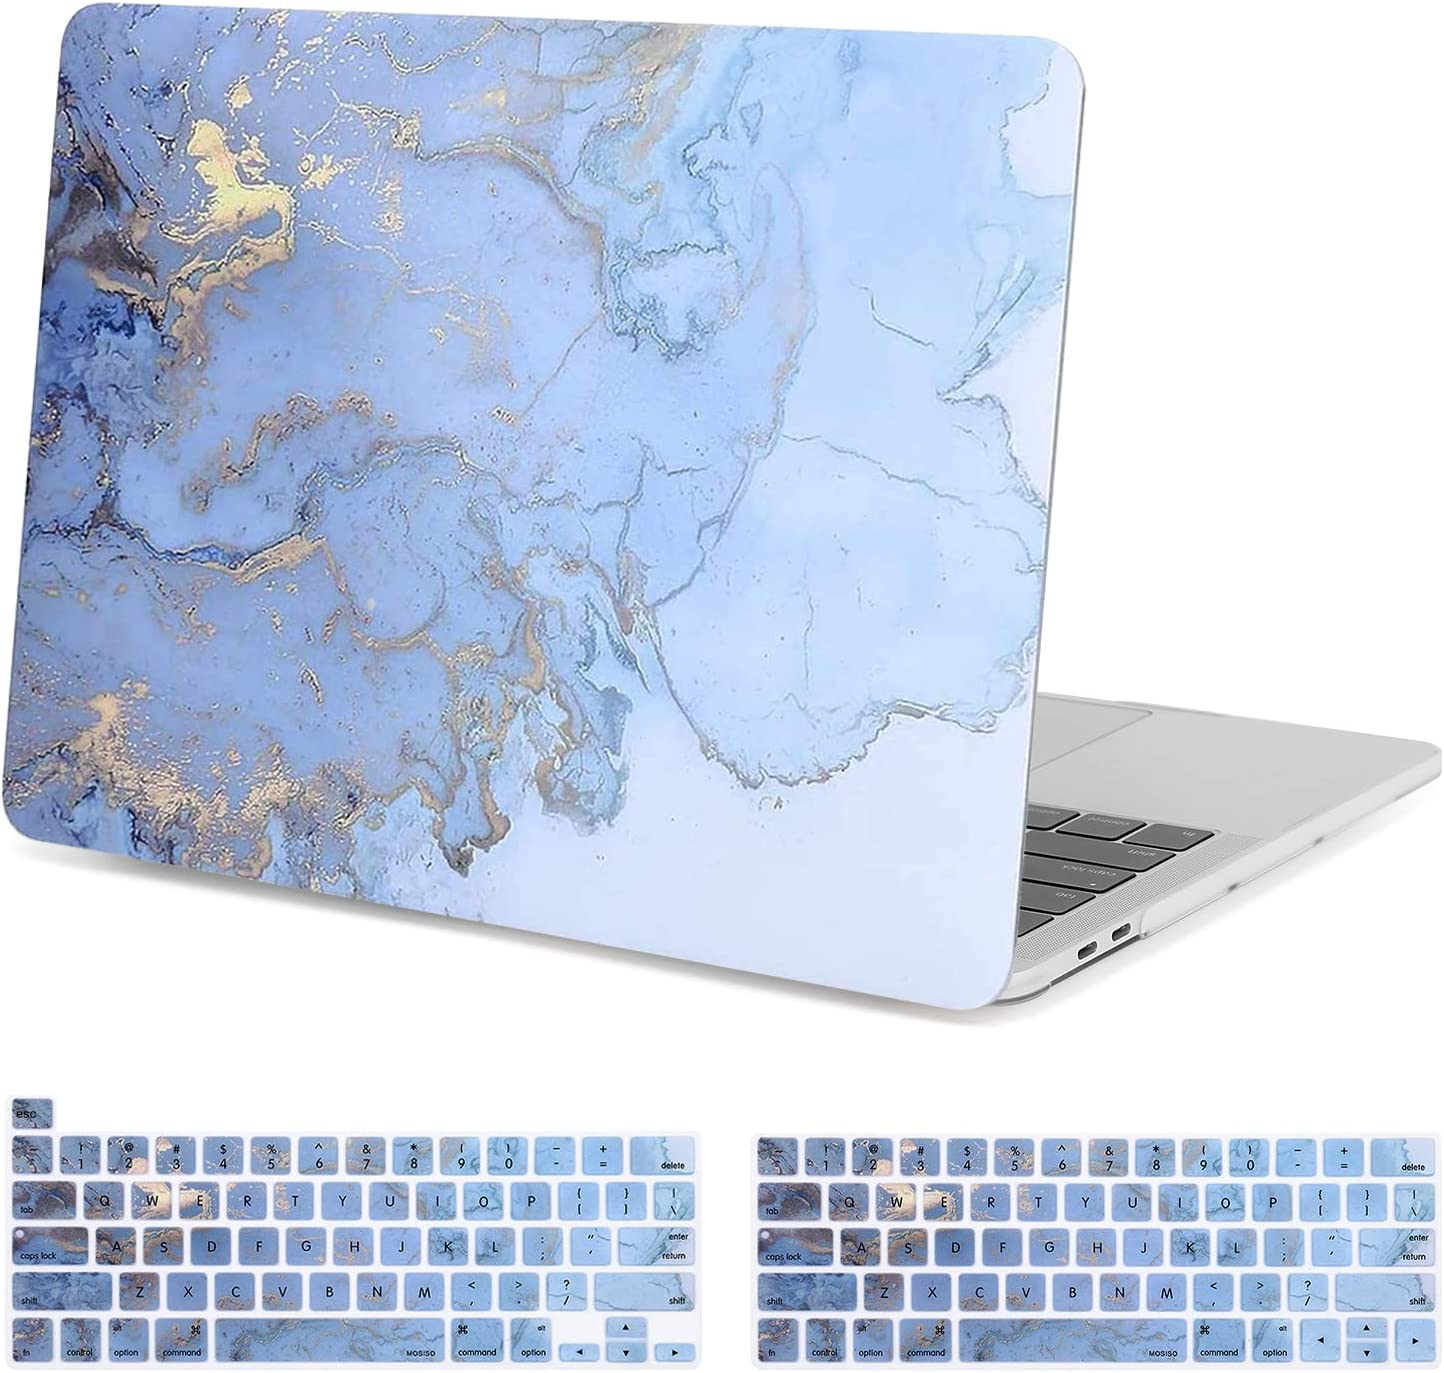 MOSISO MacBook Pro 13 inch Case 2020 2019 2018 2017 2016 Release A2289/A2251/A2159/A1989/A1706/A1708, Plastic Hard Shell, Keyboard Cover Skin Compatible with MacBook Pro 13 inch,Blue Watercolor Marble